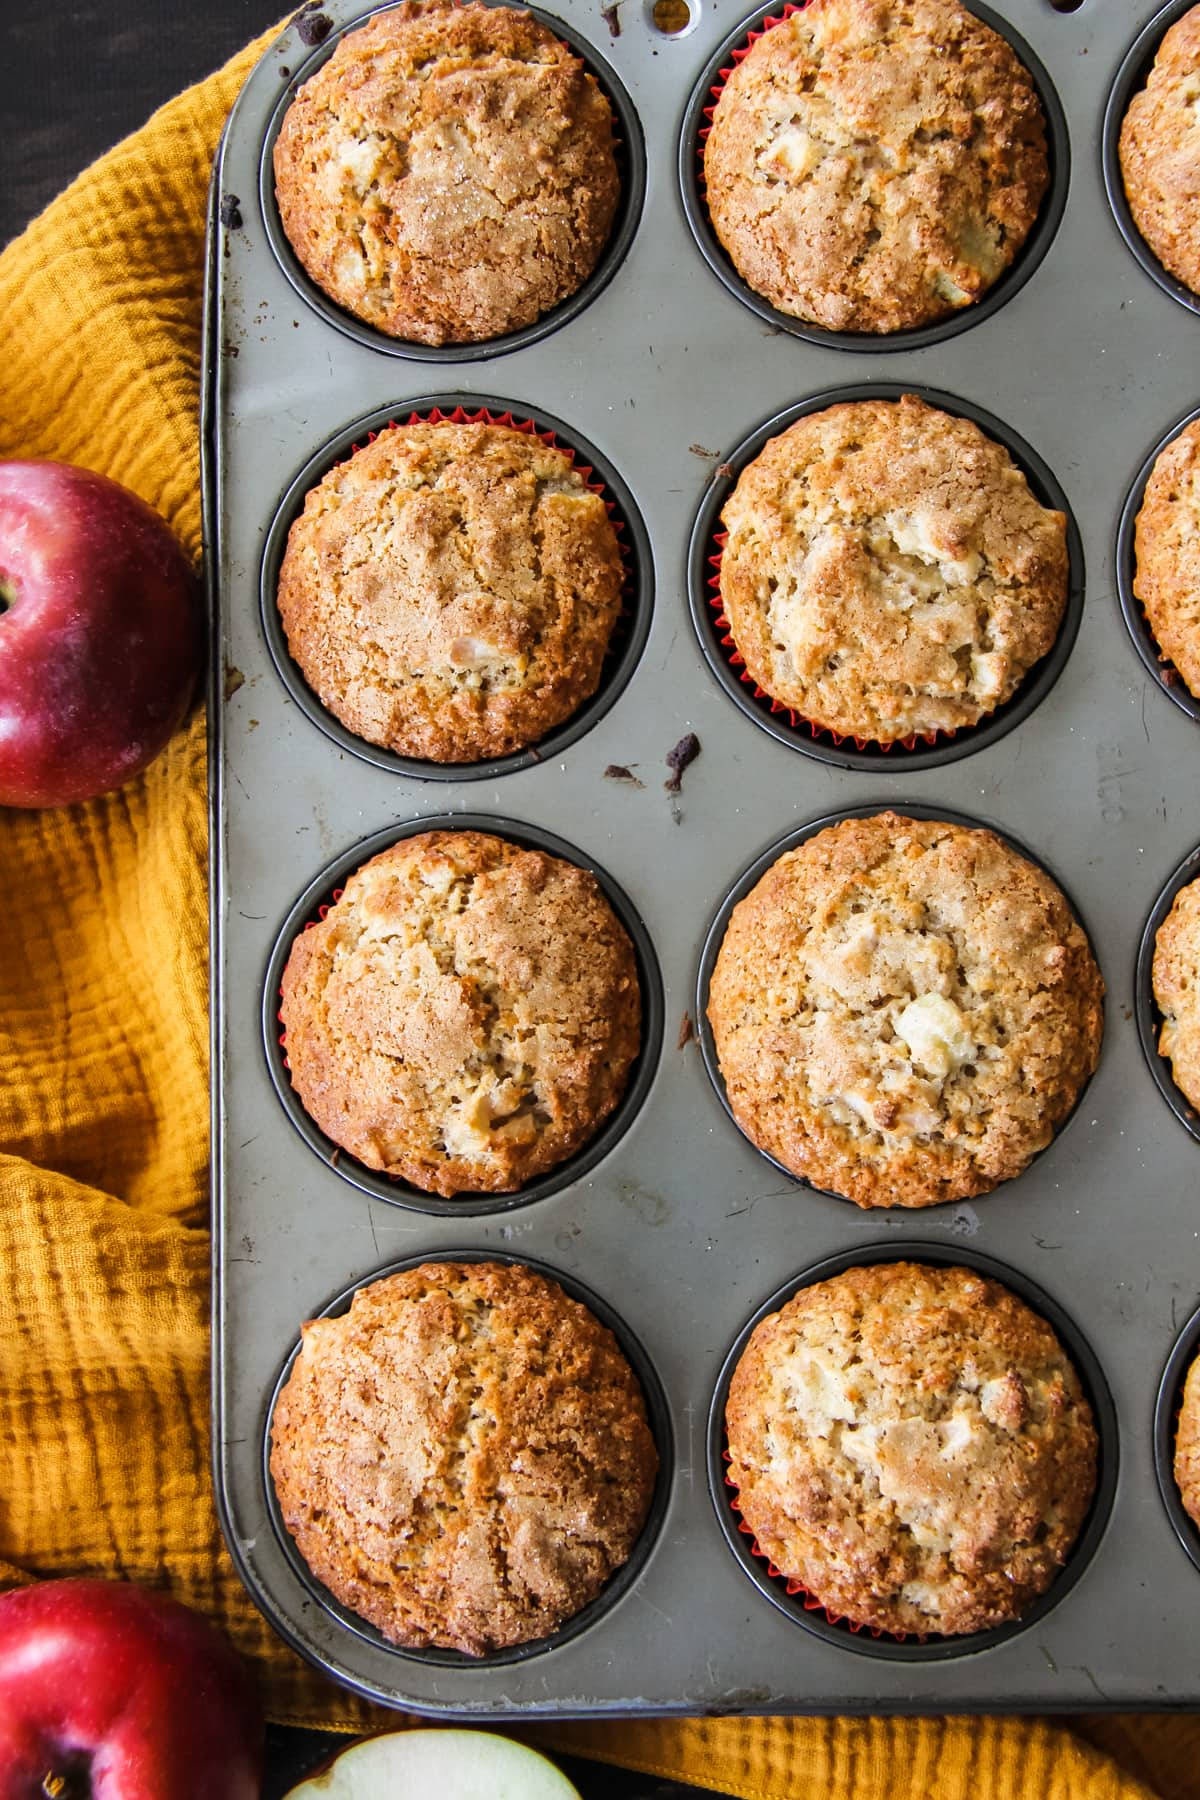 a top down view of a muffin tin filled with fresh baked muffins. in the background is a mustard yellow napkin and red apples